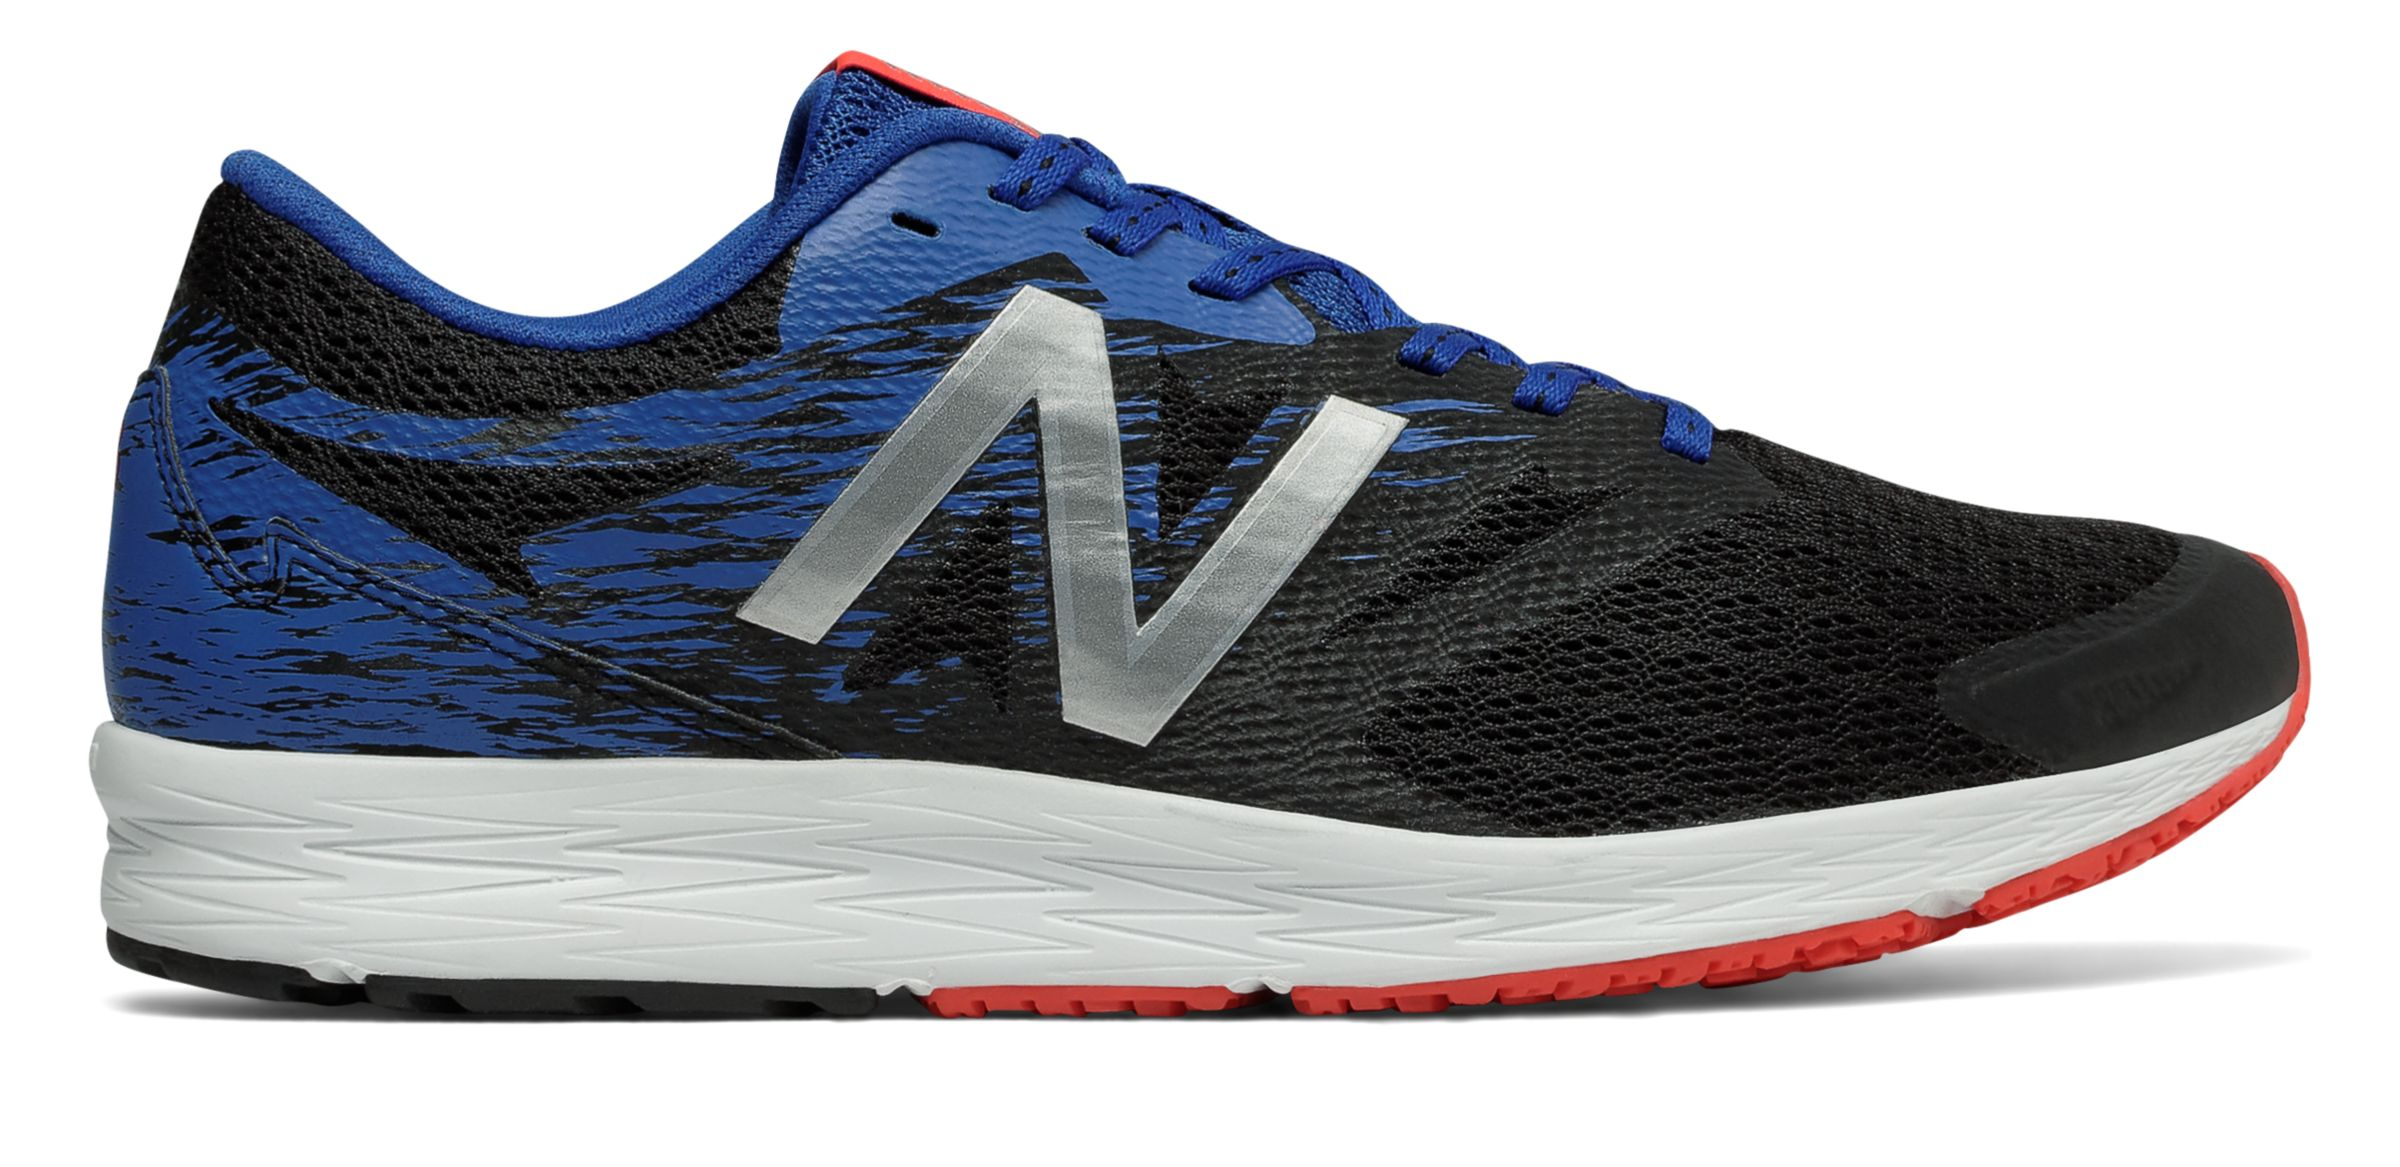 NB New Balance Flash, Black with Team Royal & Energy Red